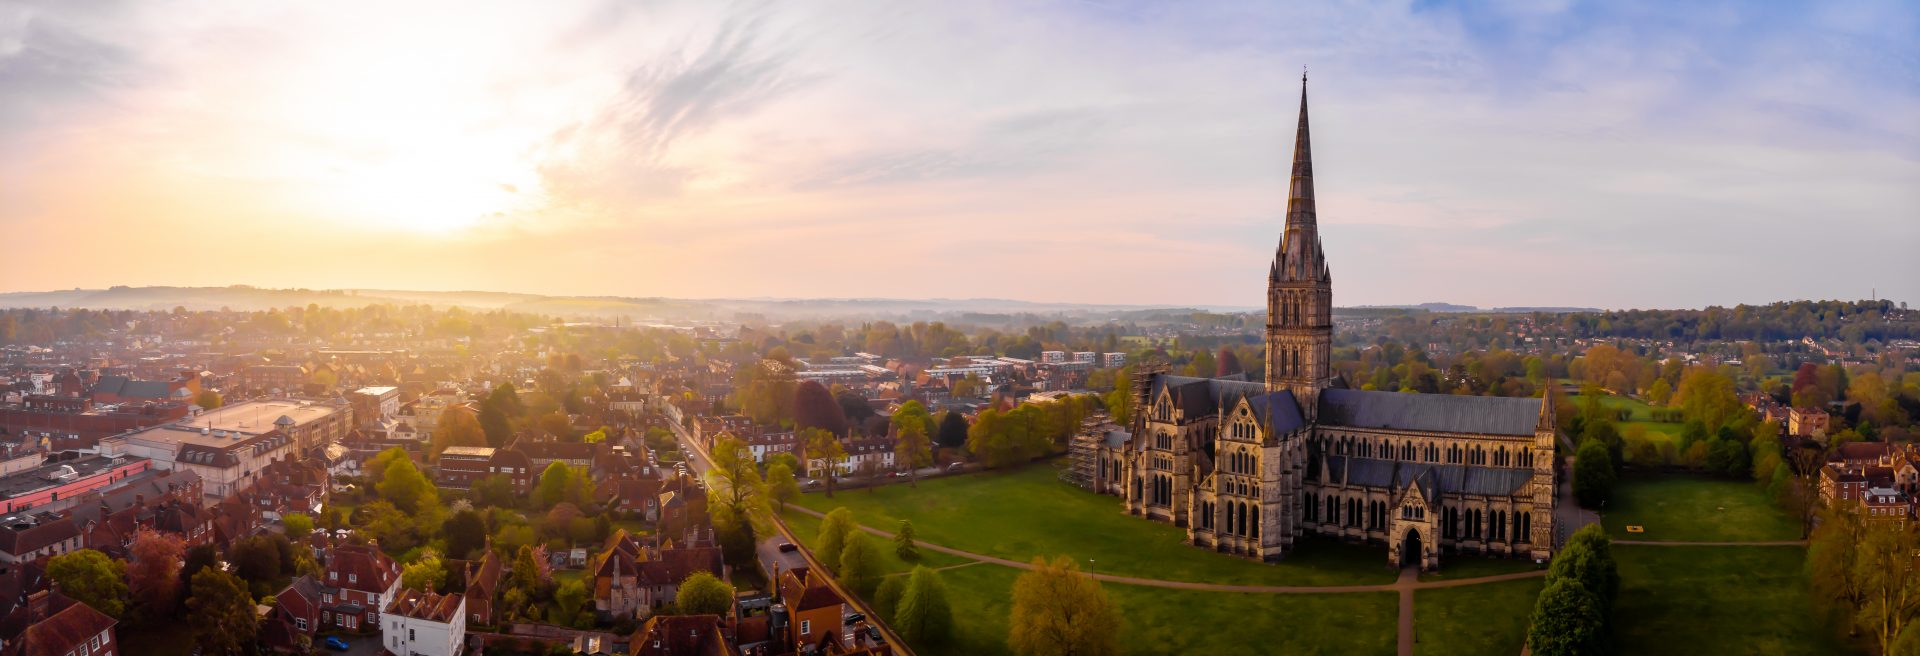 Aerial view of Salisbury and its cathedral